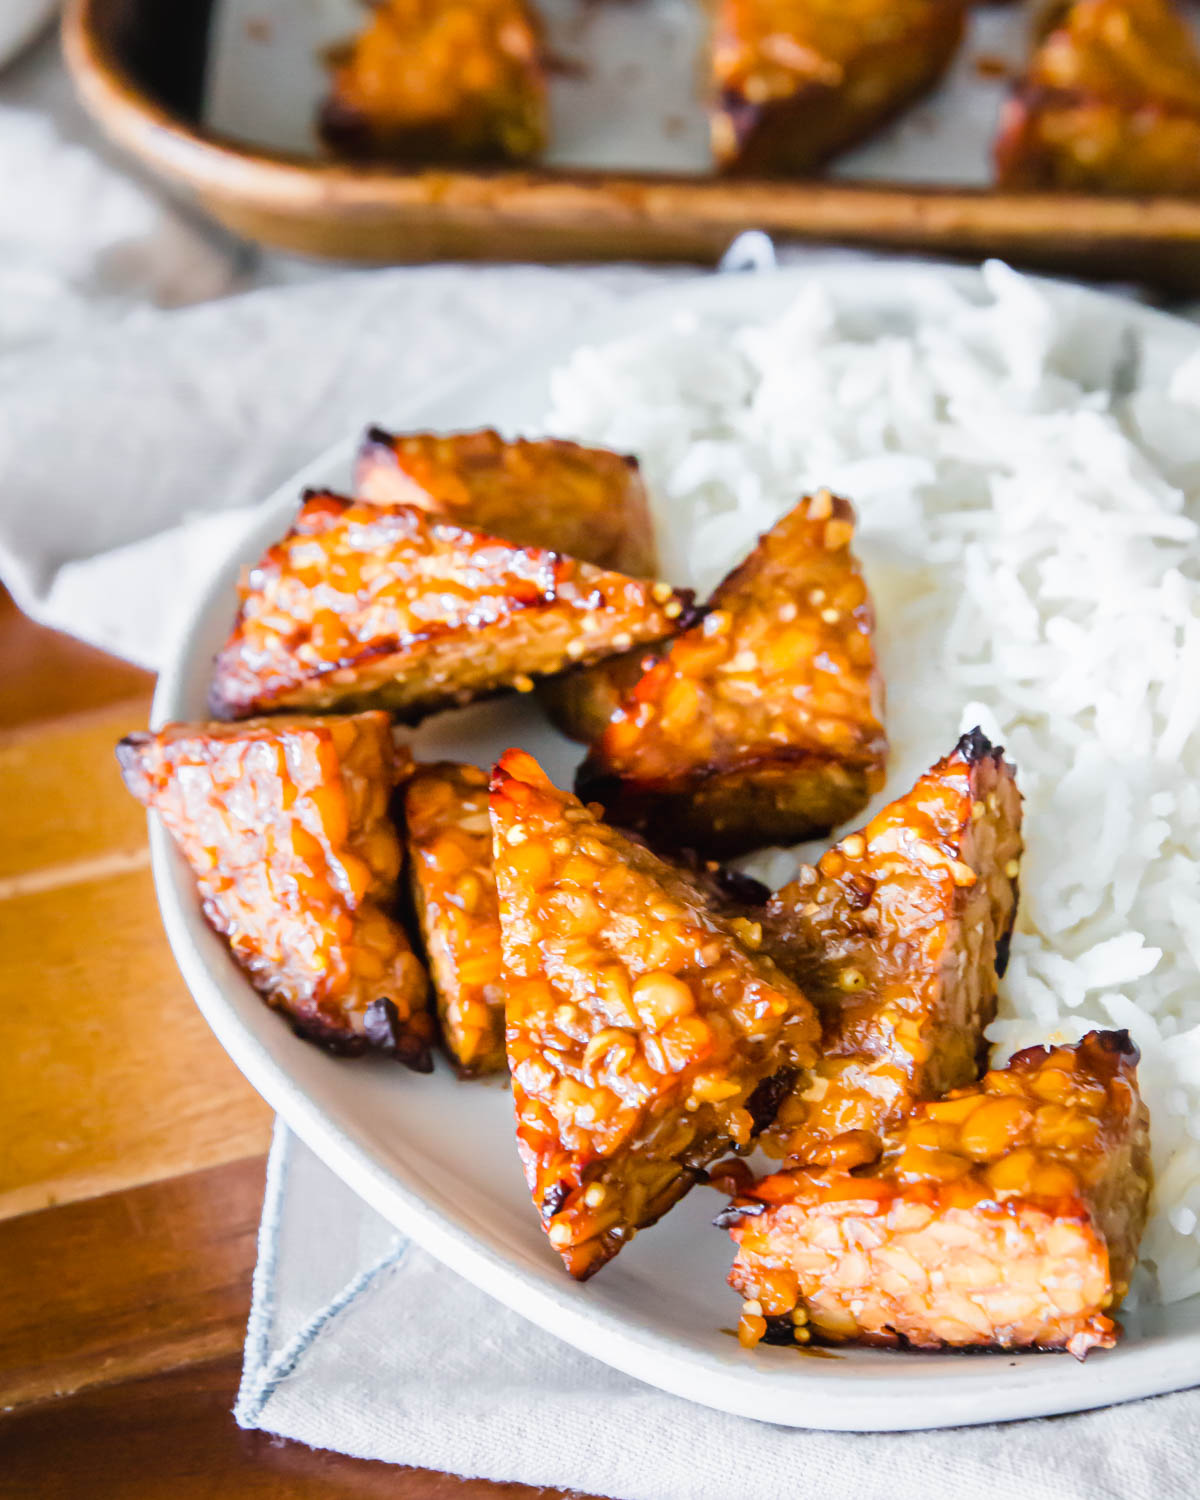 Crispy baked tempeh using a simple marinade for delicious umami flavor.